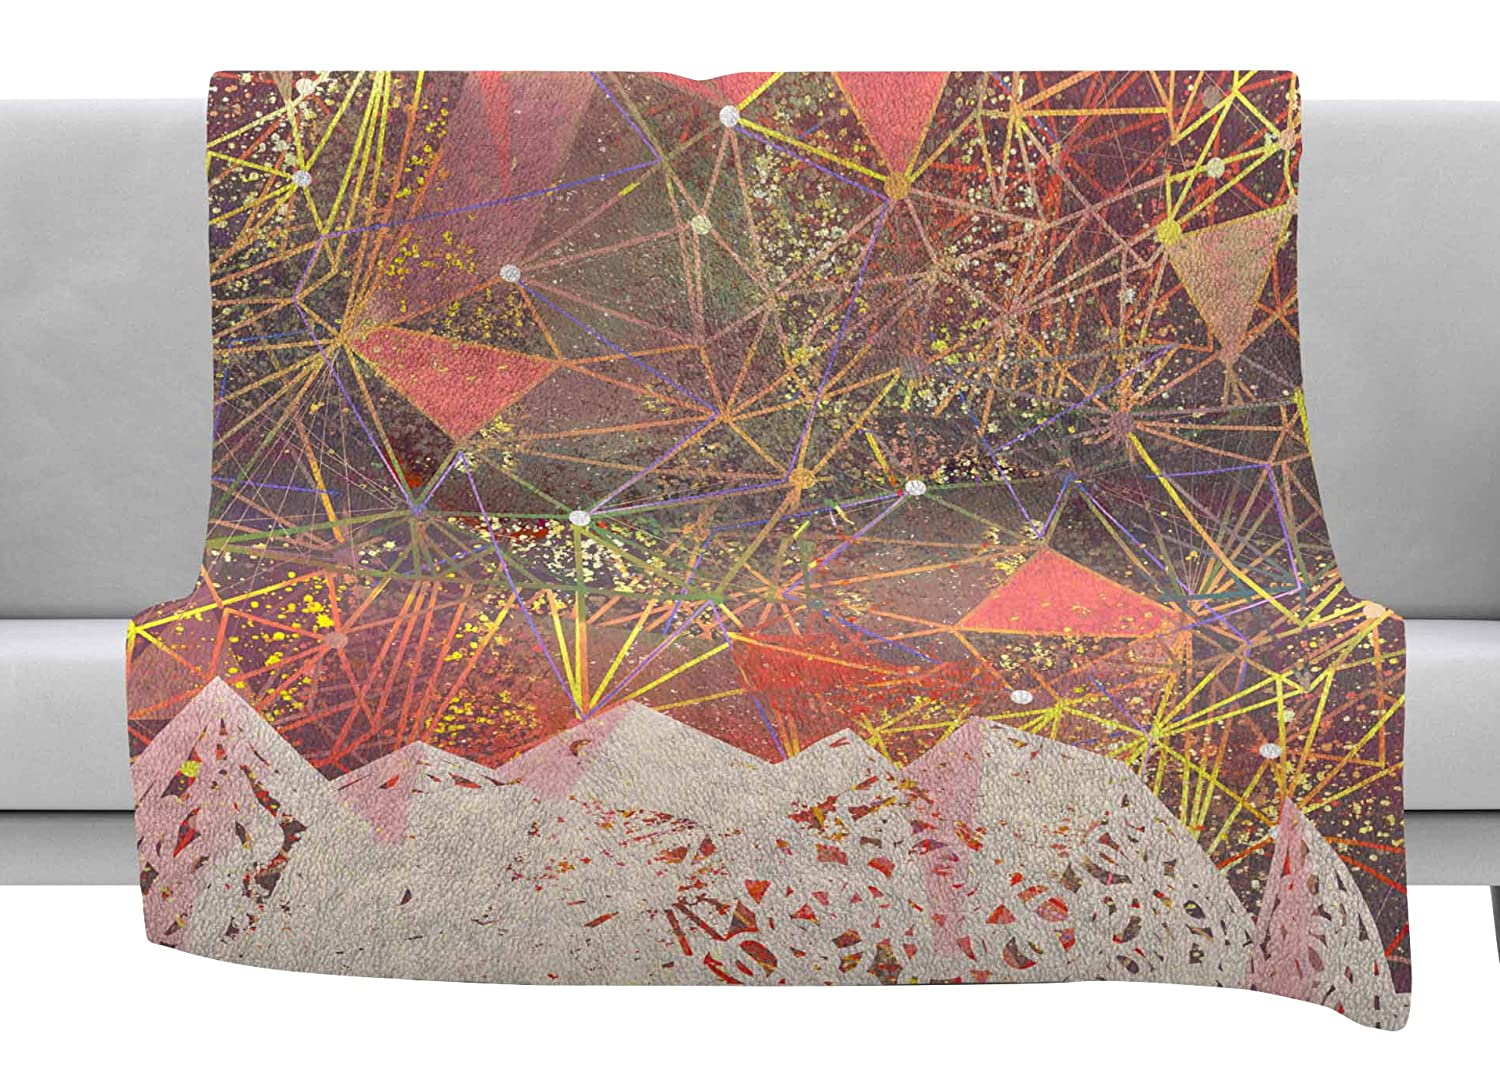 Kess InHouse Marianna Tankelevich Pink Space Mountain Multicolor Coral Mixed Media Throw 80 x 60 Fleece Blanket